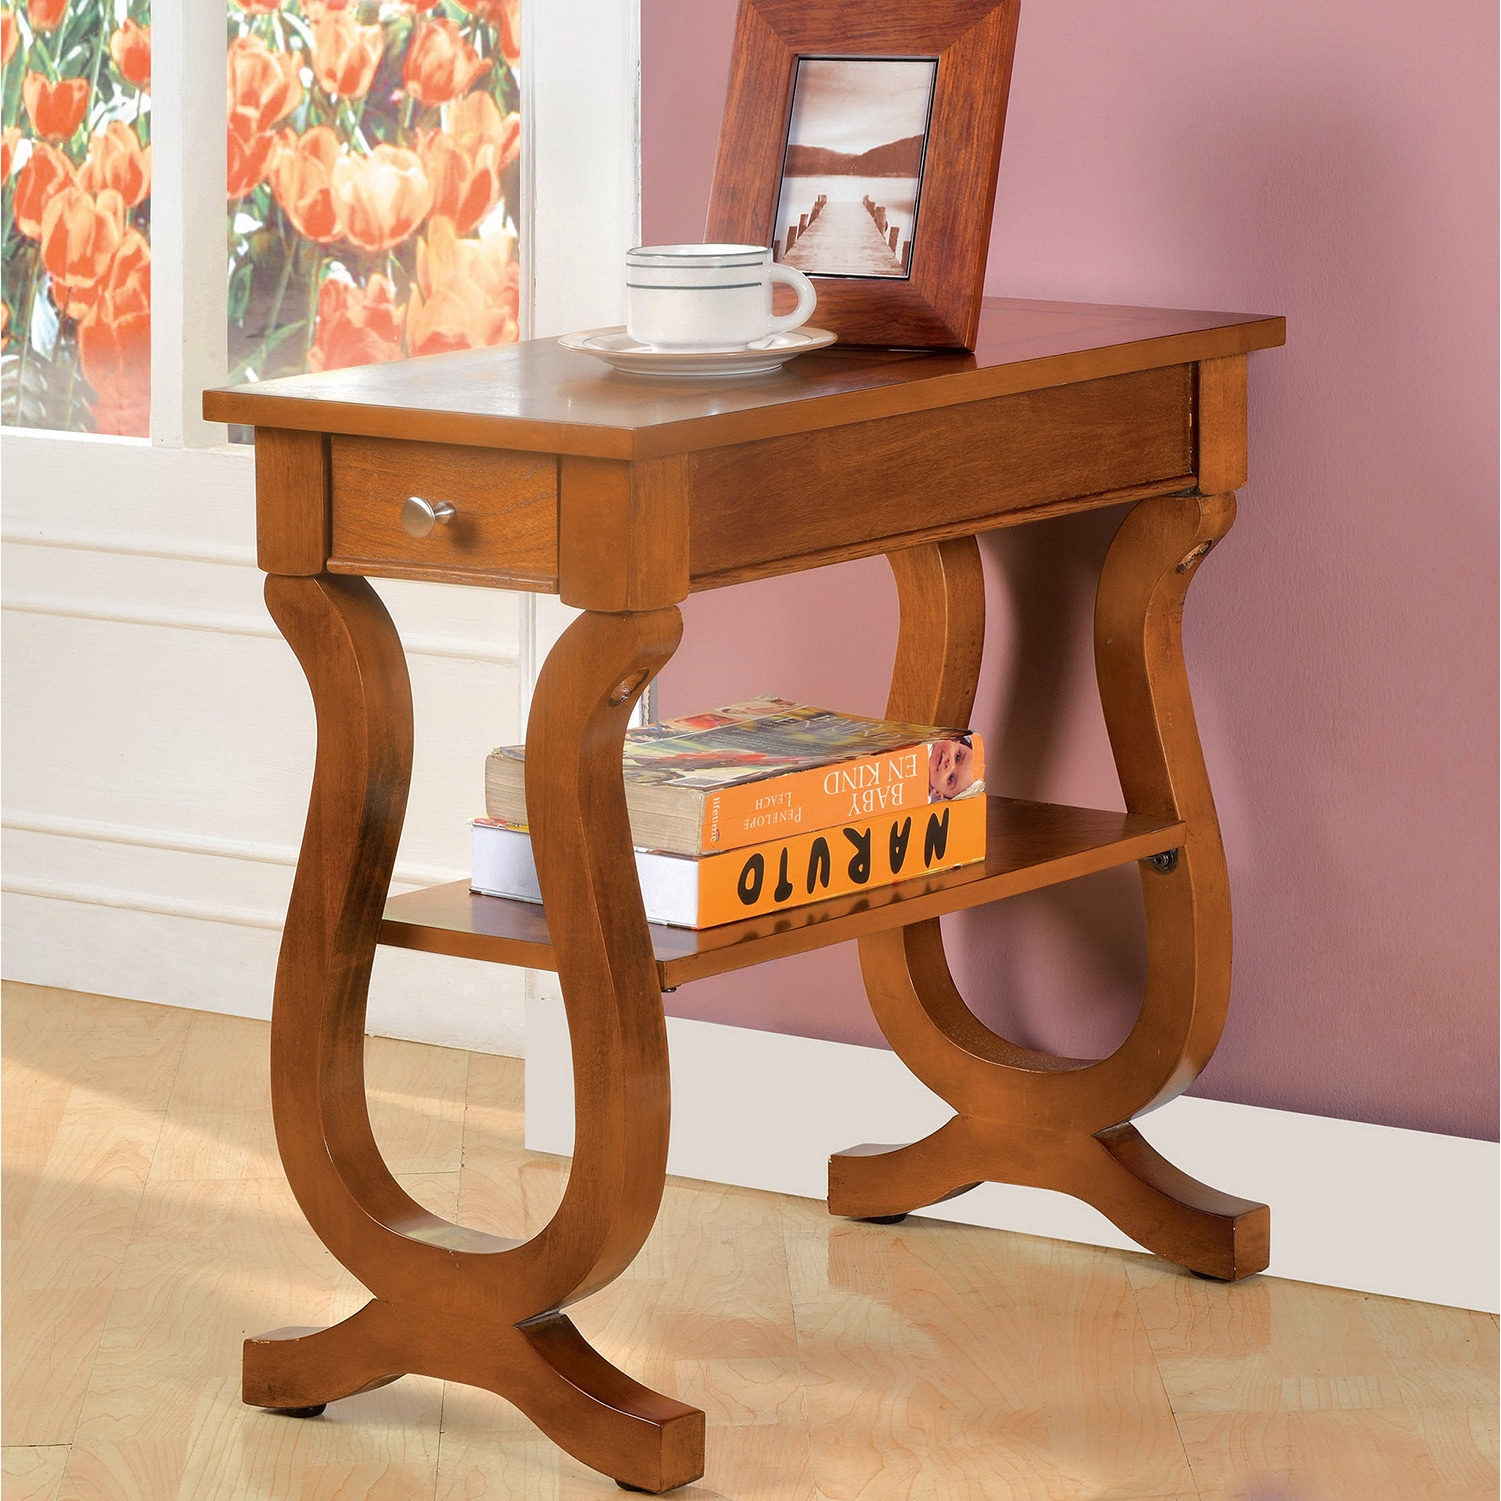 Furniture Of America Antique Oak Belton Side Table With Storage Drawer    Free Shipping Today   Overstock   16069642